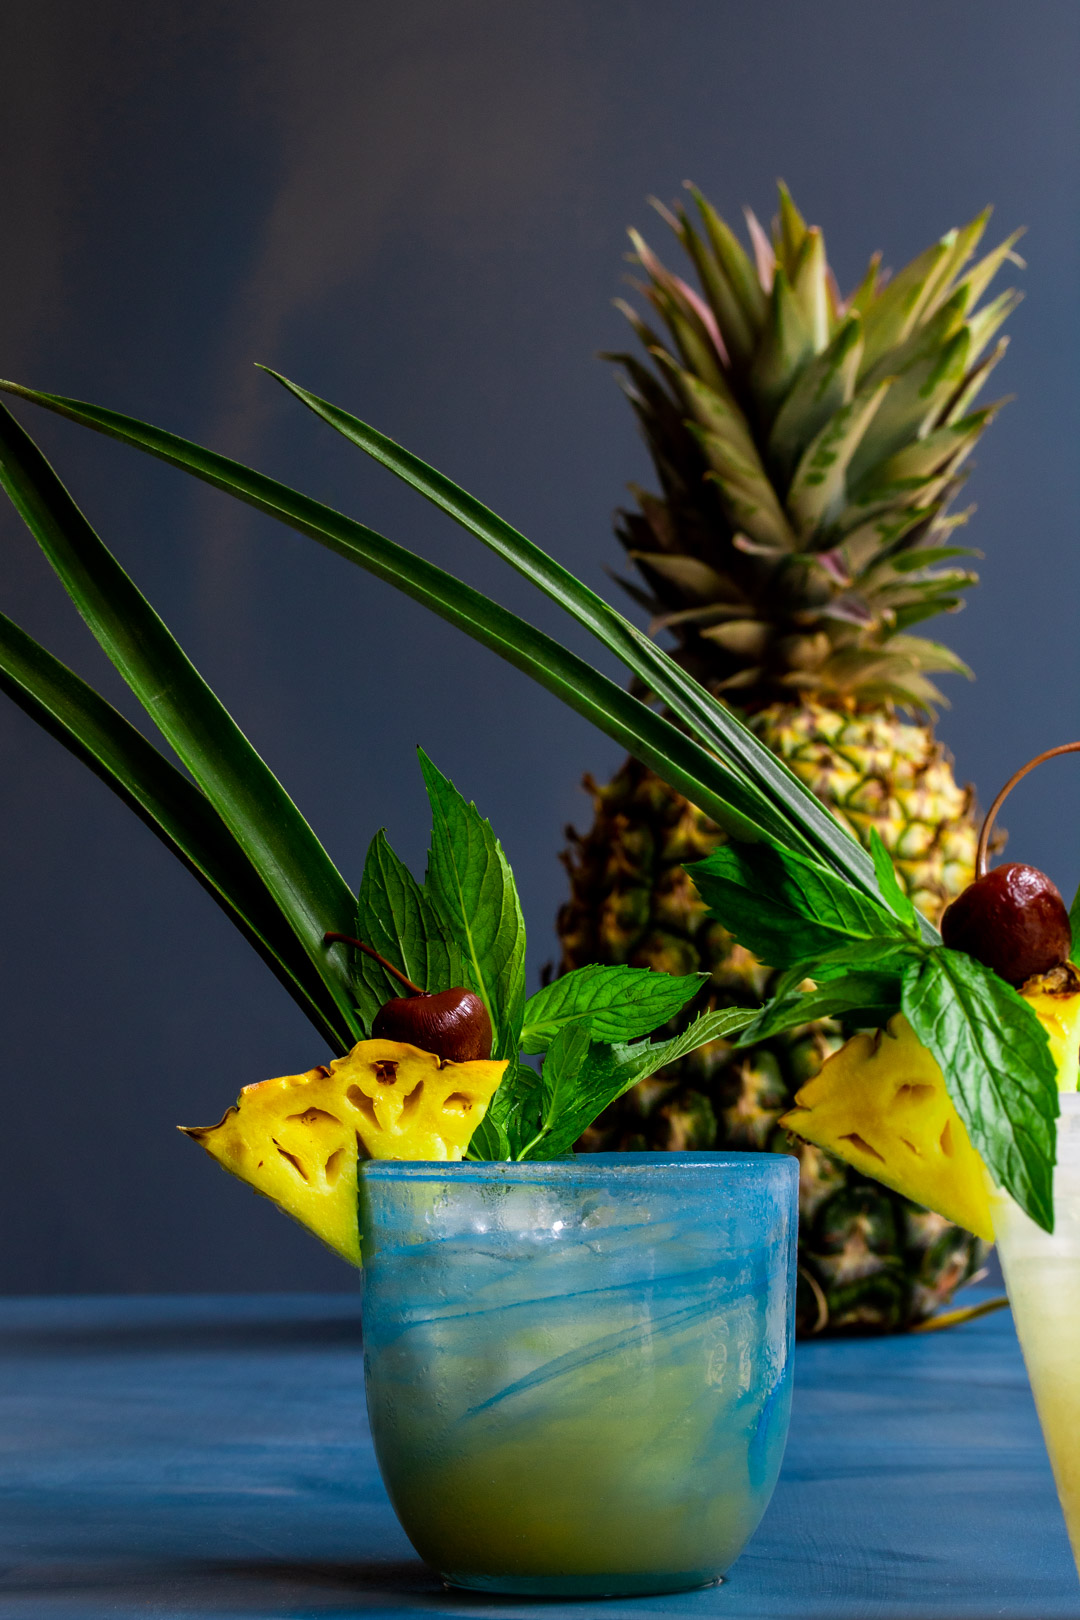 Pickle Mai Tai cocktail with blue glass front and pineapple in background